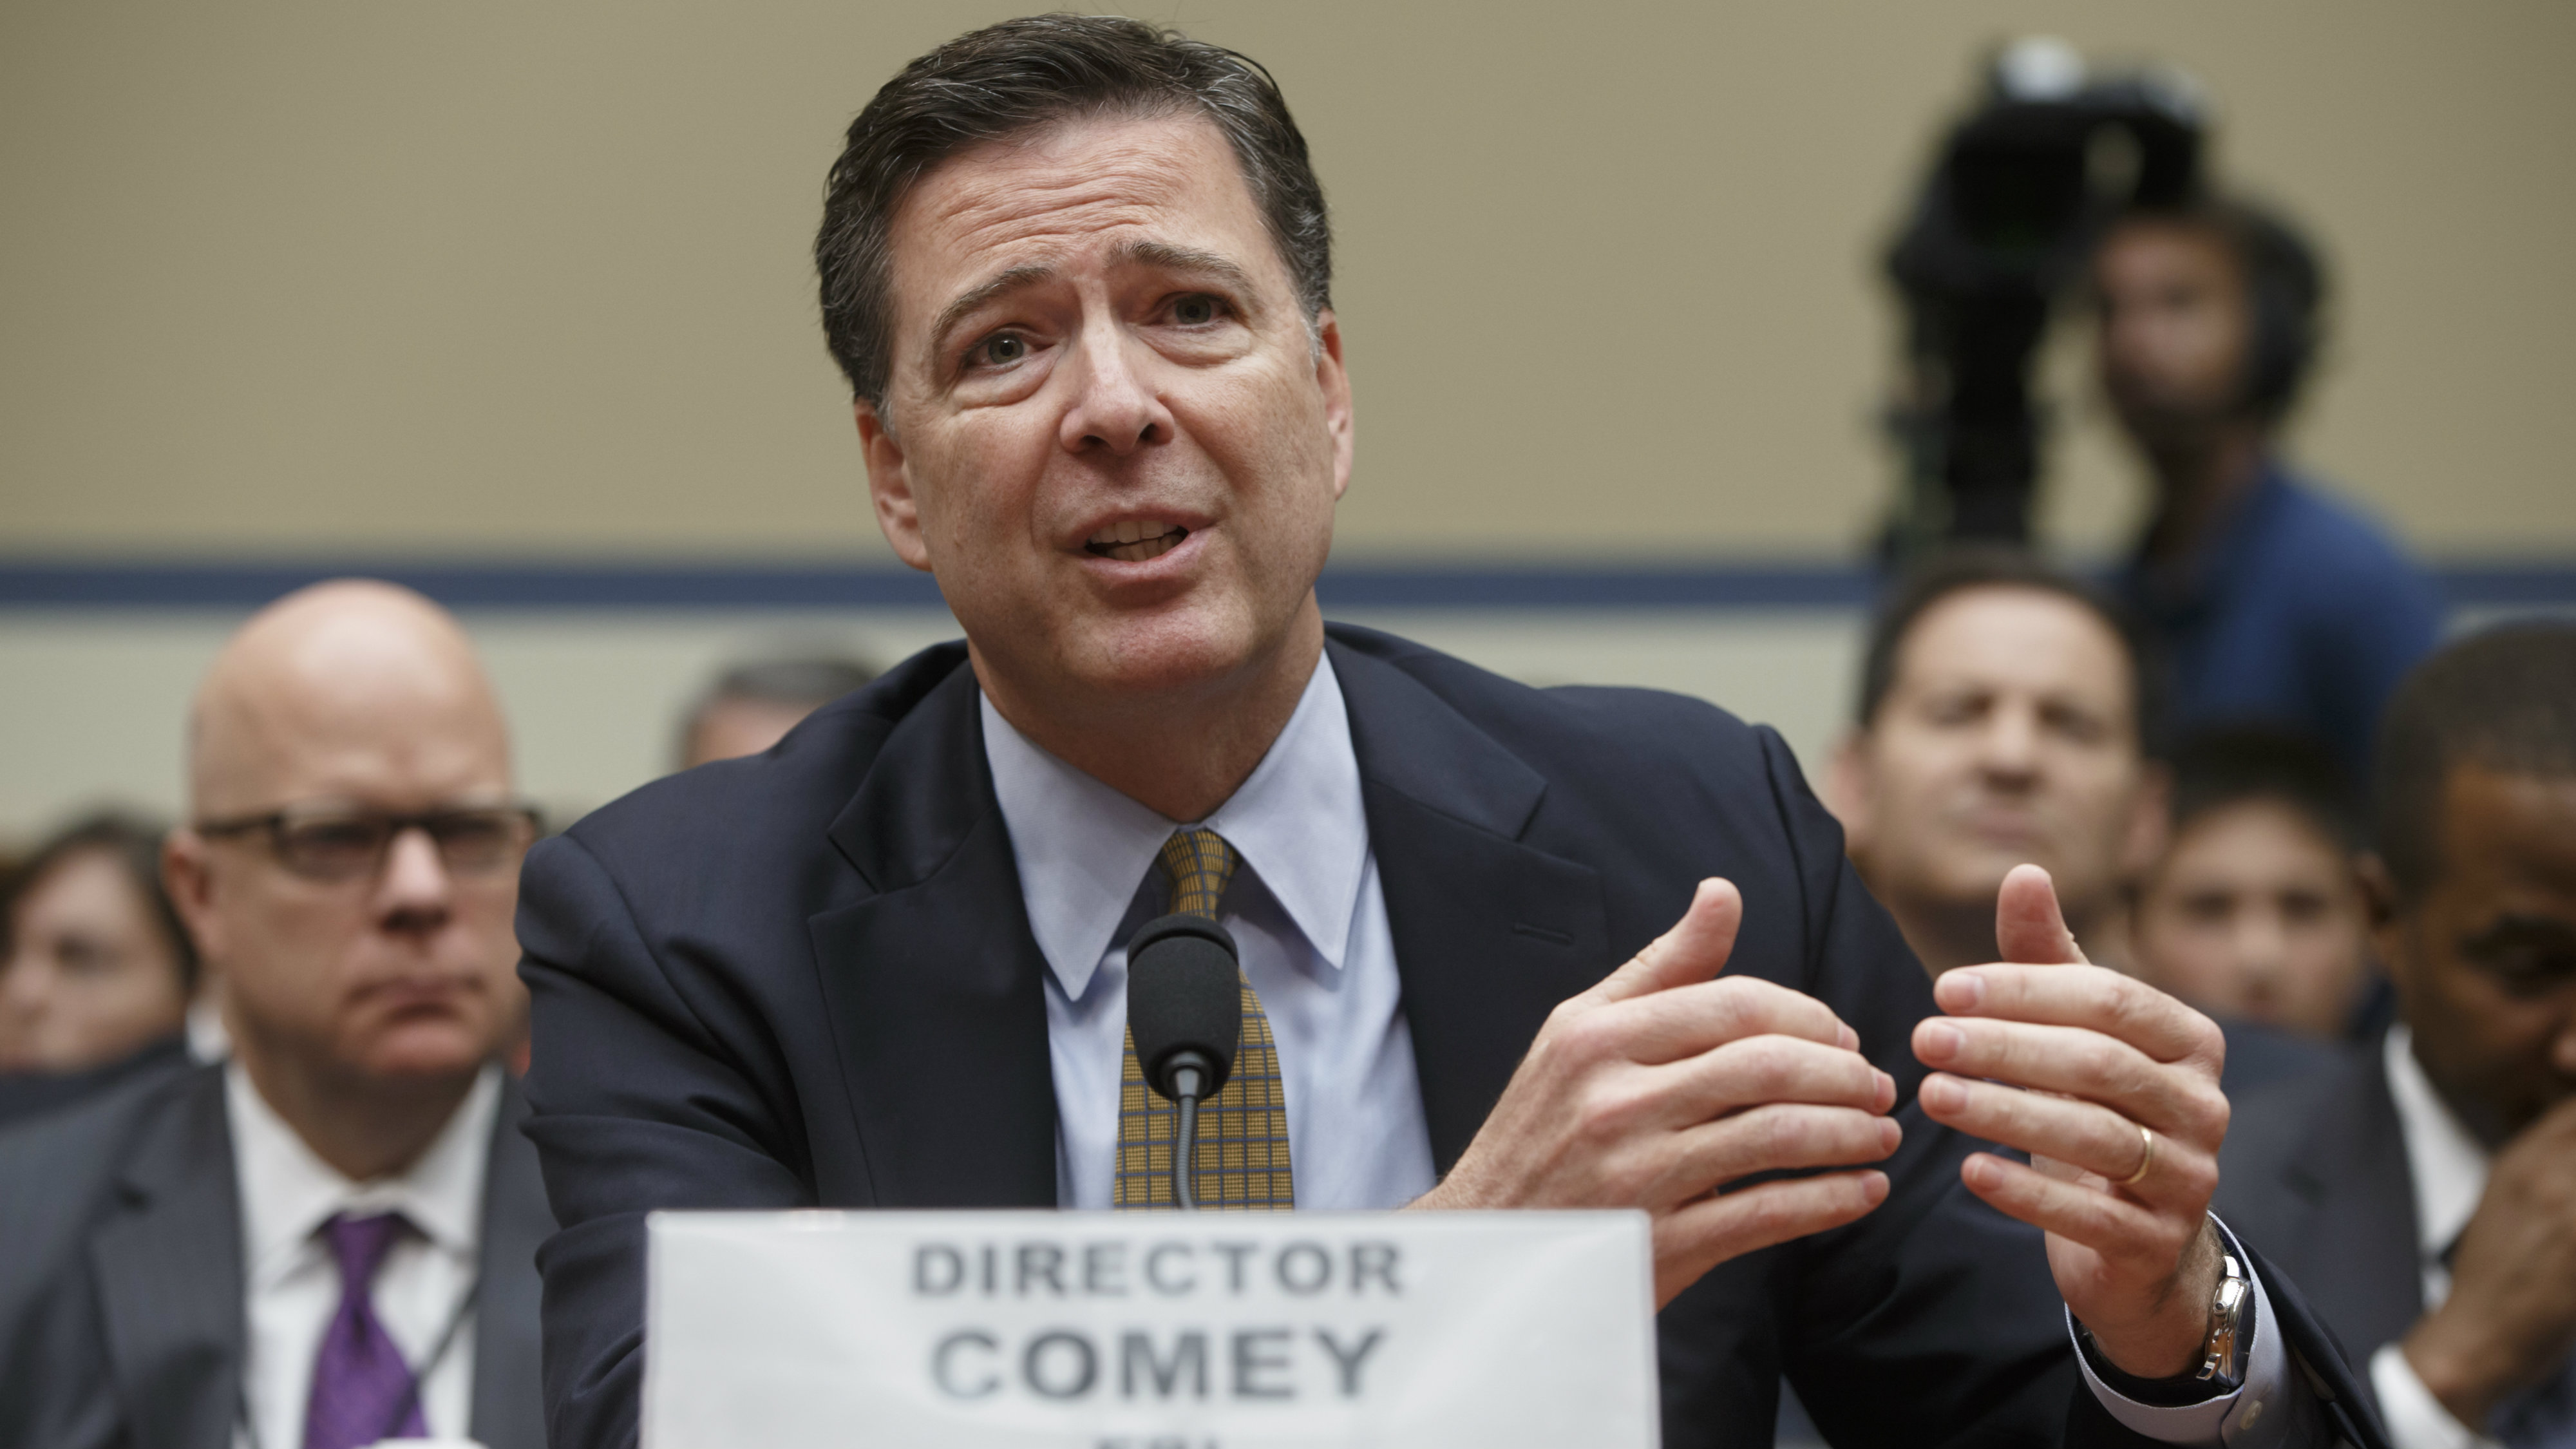 FBI Director James Comey testifies on Capitol Hill in Washington before the House Oversight Committee to explain his agency's recommendation to not prosecute Hillary Clinton. In a letter from Comey released on Nov. 6, he tells Congress review of additional Clinton emails does not change conclusion she should not face charges.